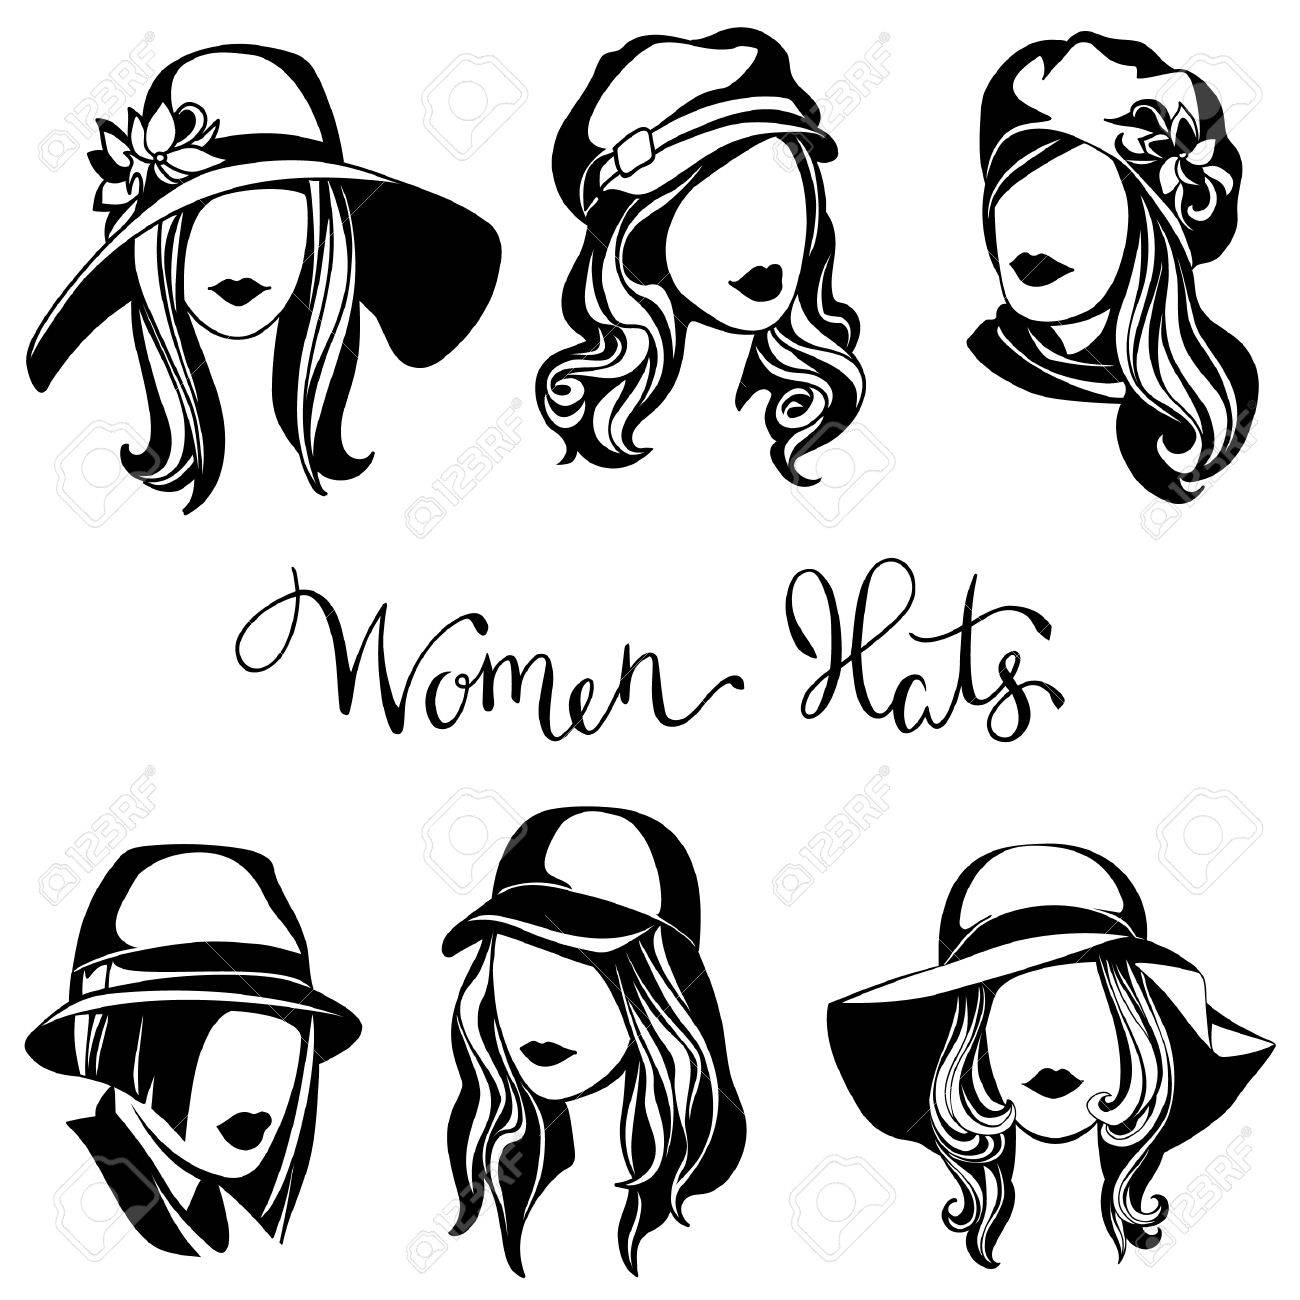 05e095e12bc Vector - vector set of black and white logos of women s hats